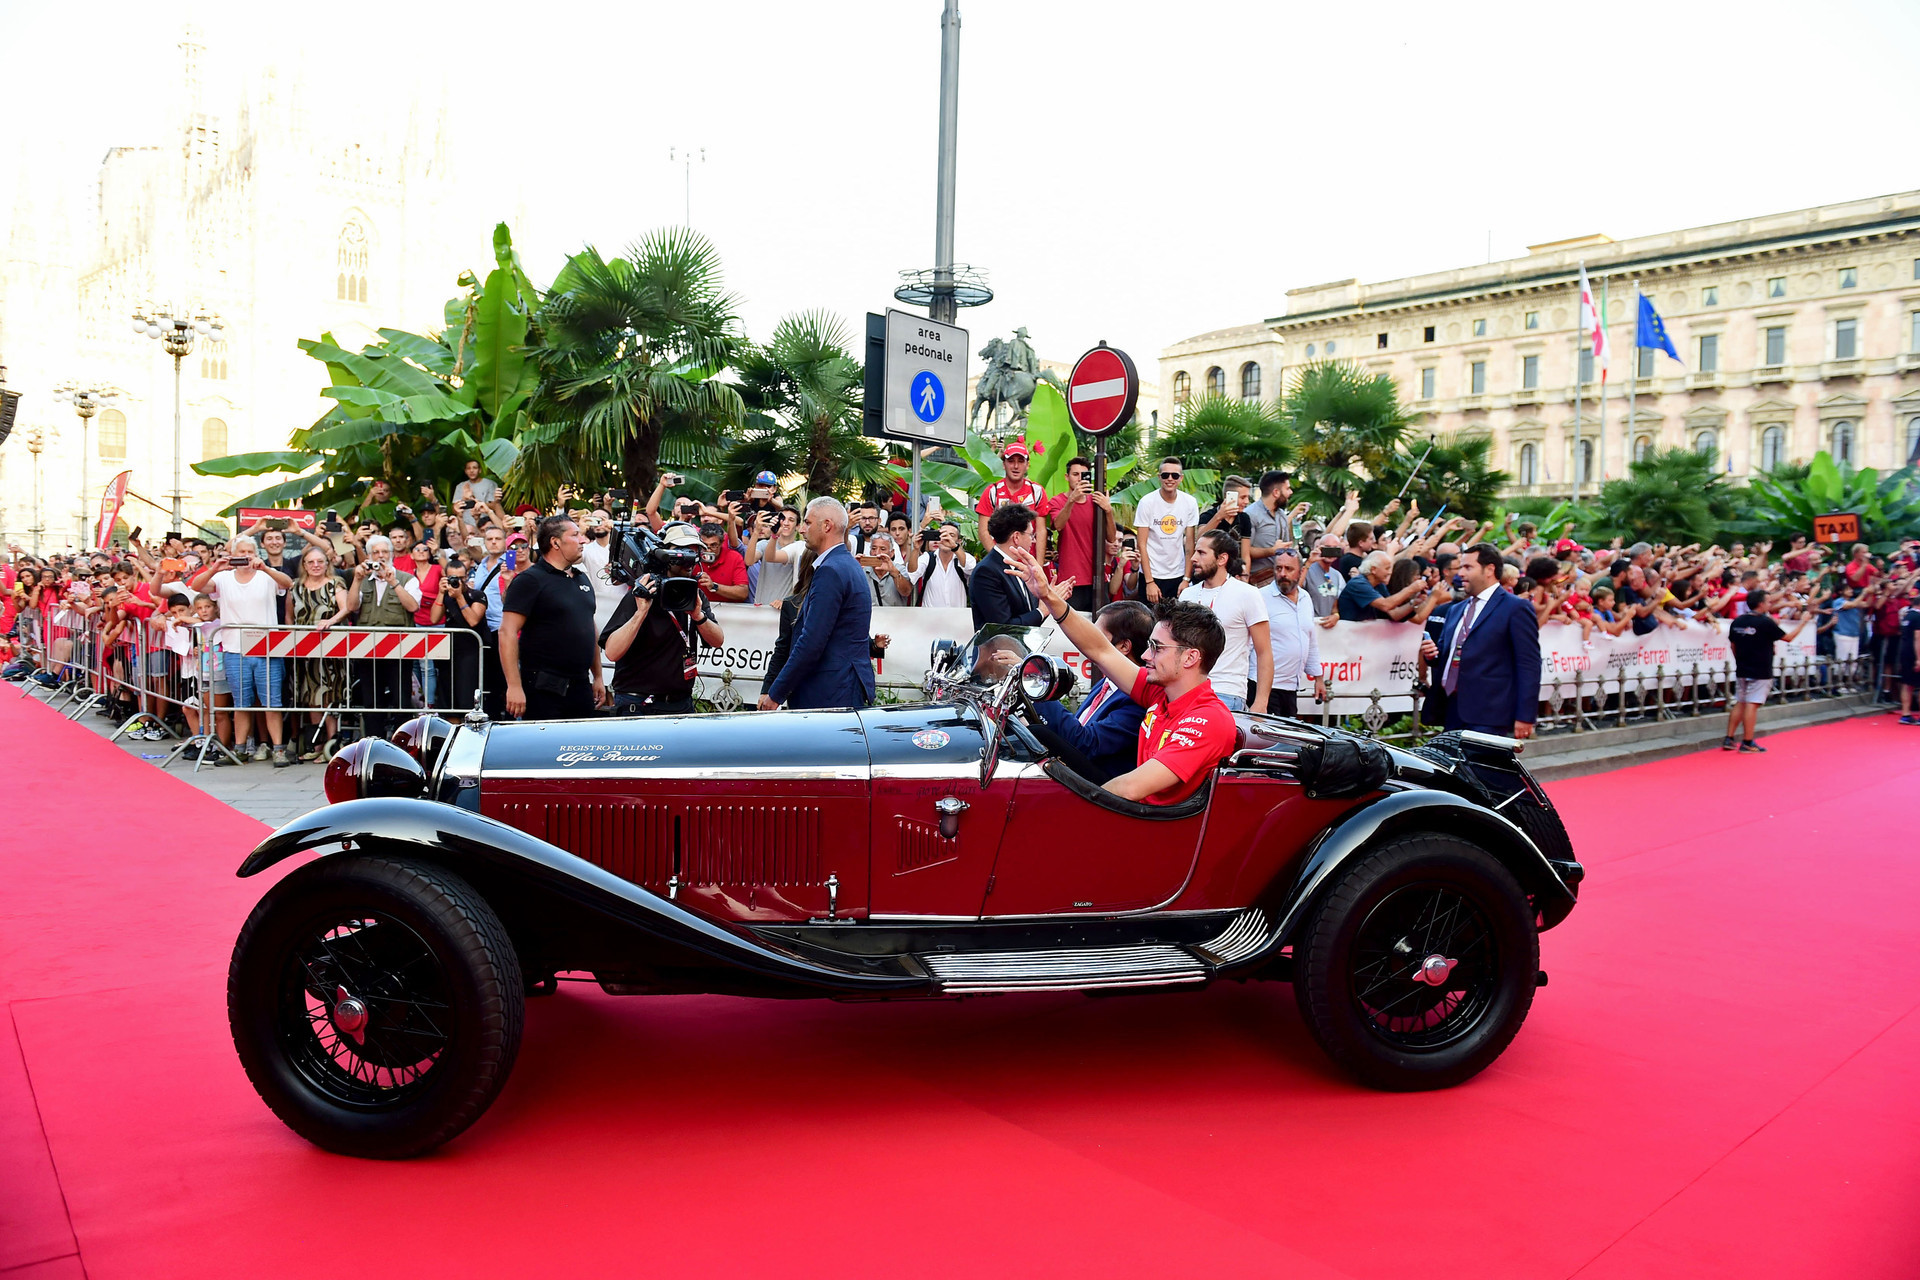 2019 Ferrari 90 Years celebration at Milan | 4 Sept 2019 website 28.jpg